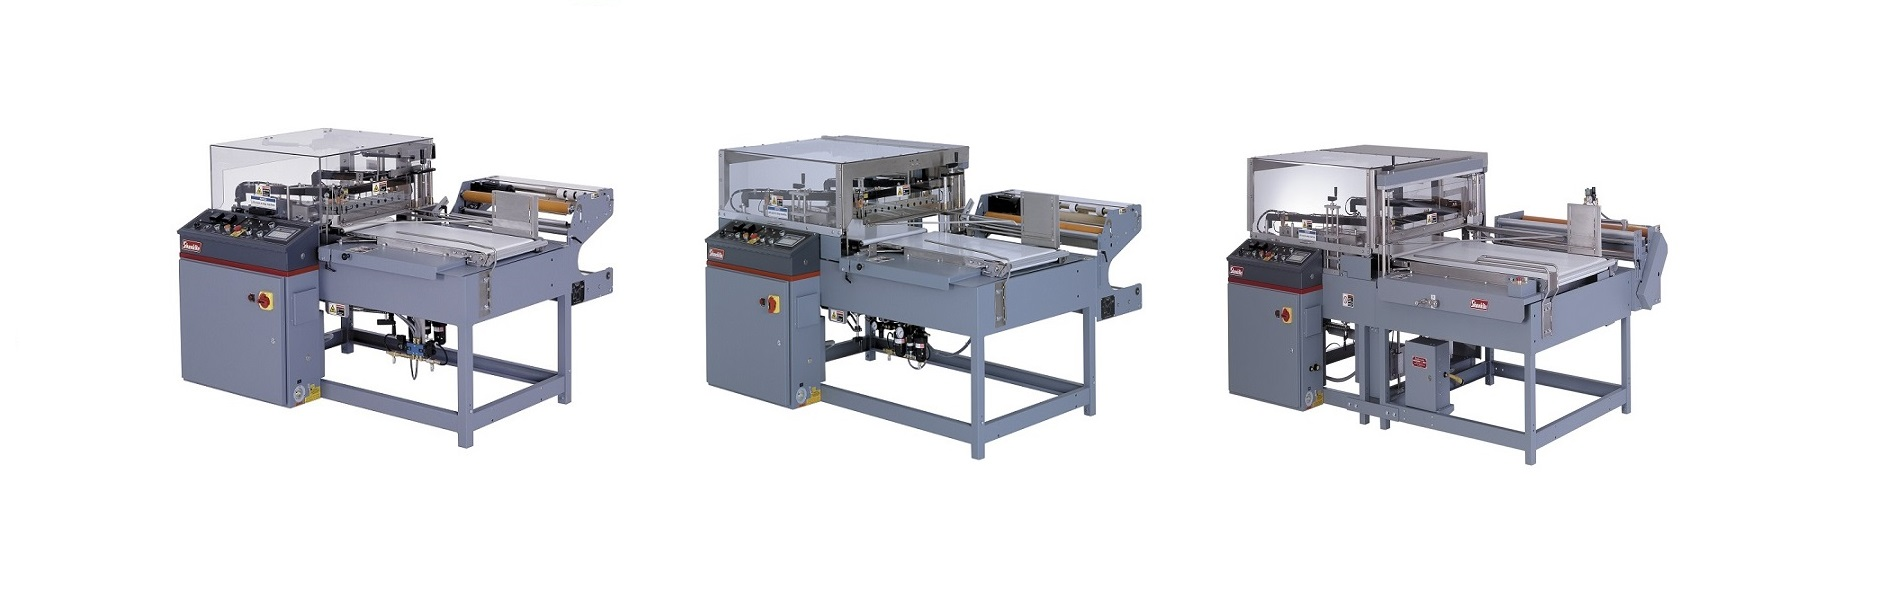 Shrink Packaging Machines - Automatic L Sealers